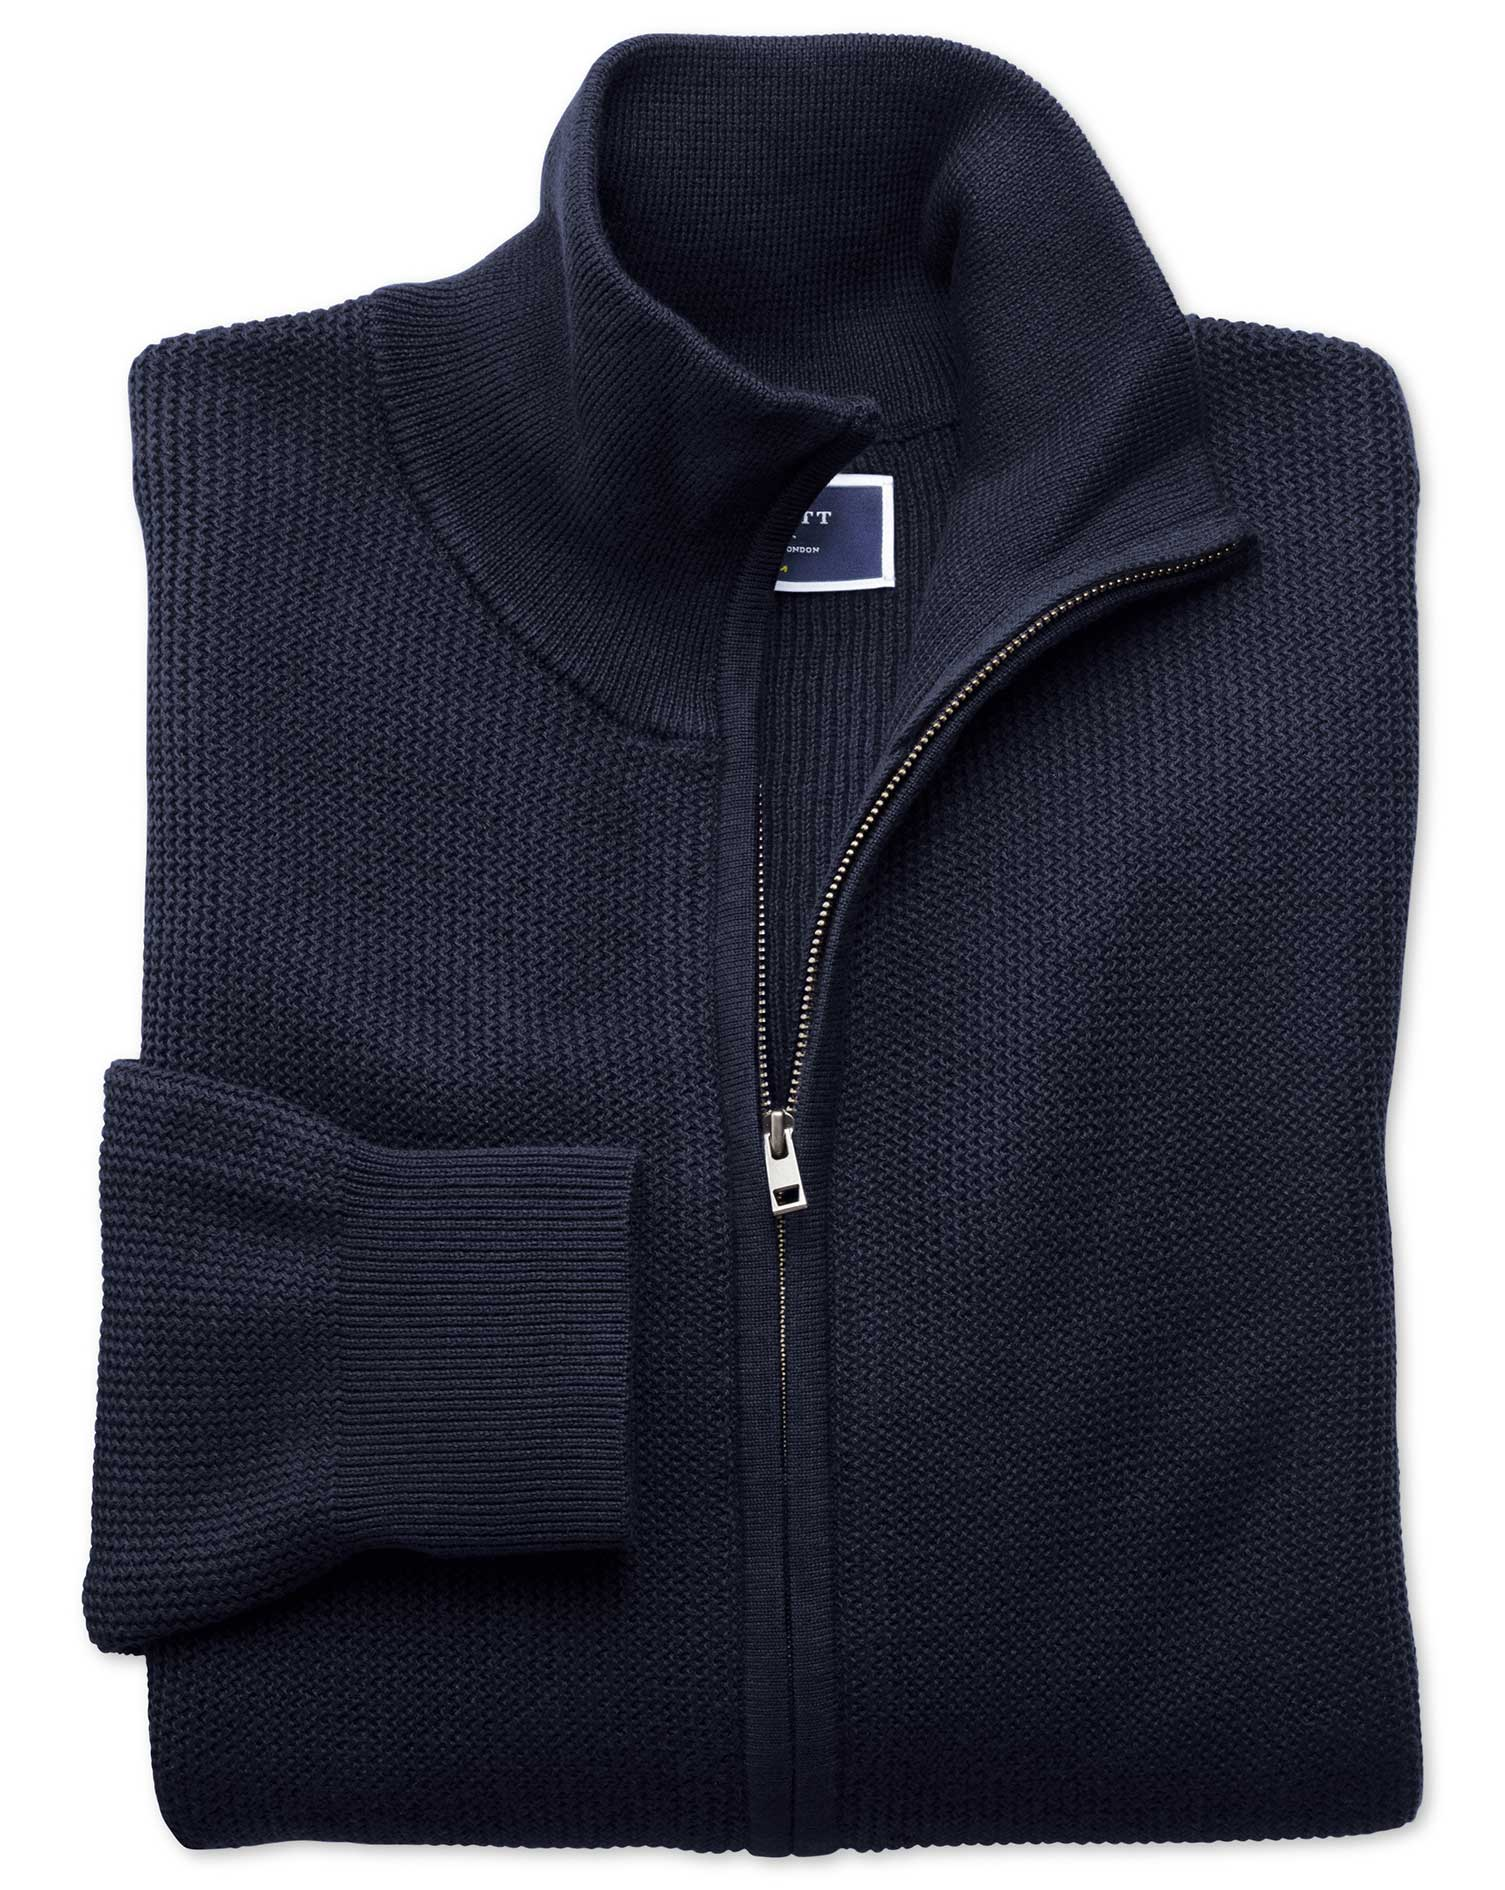 Navy Pima Cotton Textured Zip Through Cardigan Size XXXL by Charles Tyrwhitt